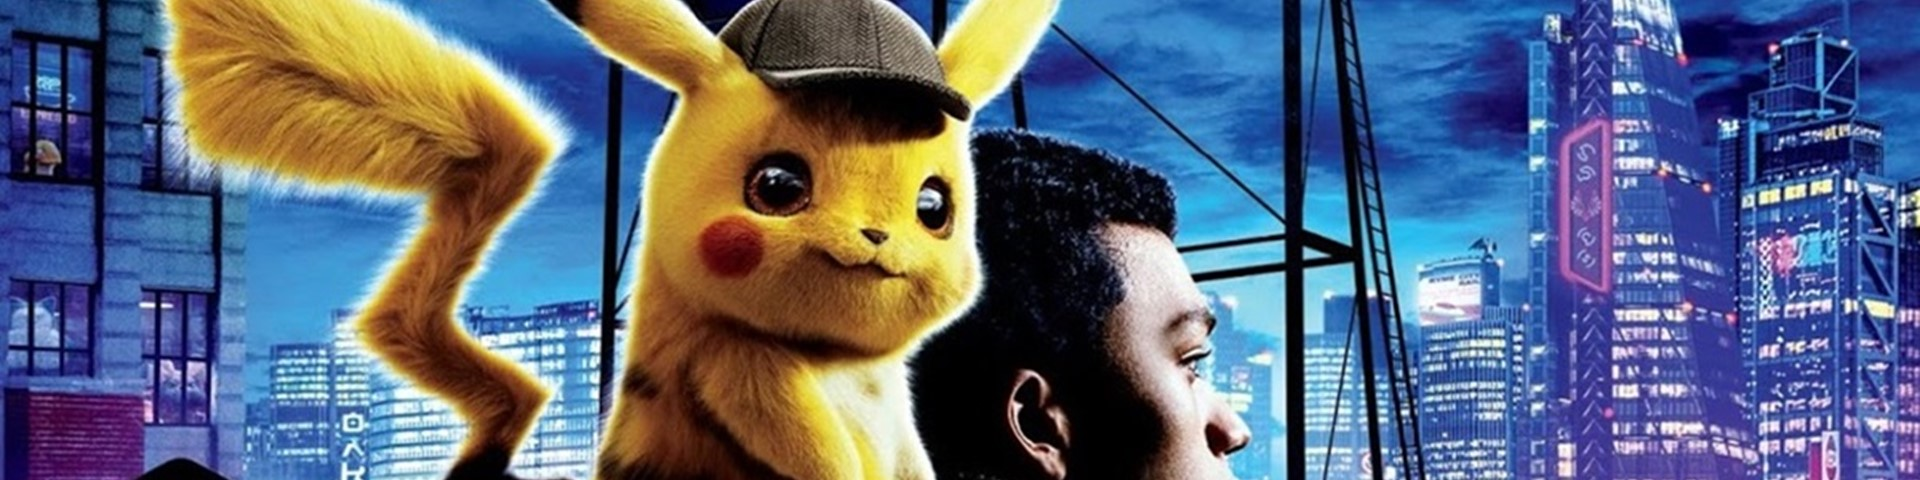 'Detetive Pikachu' e o marketing certeiro no cinema